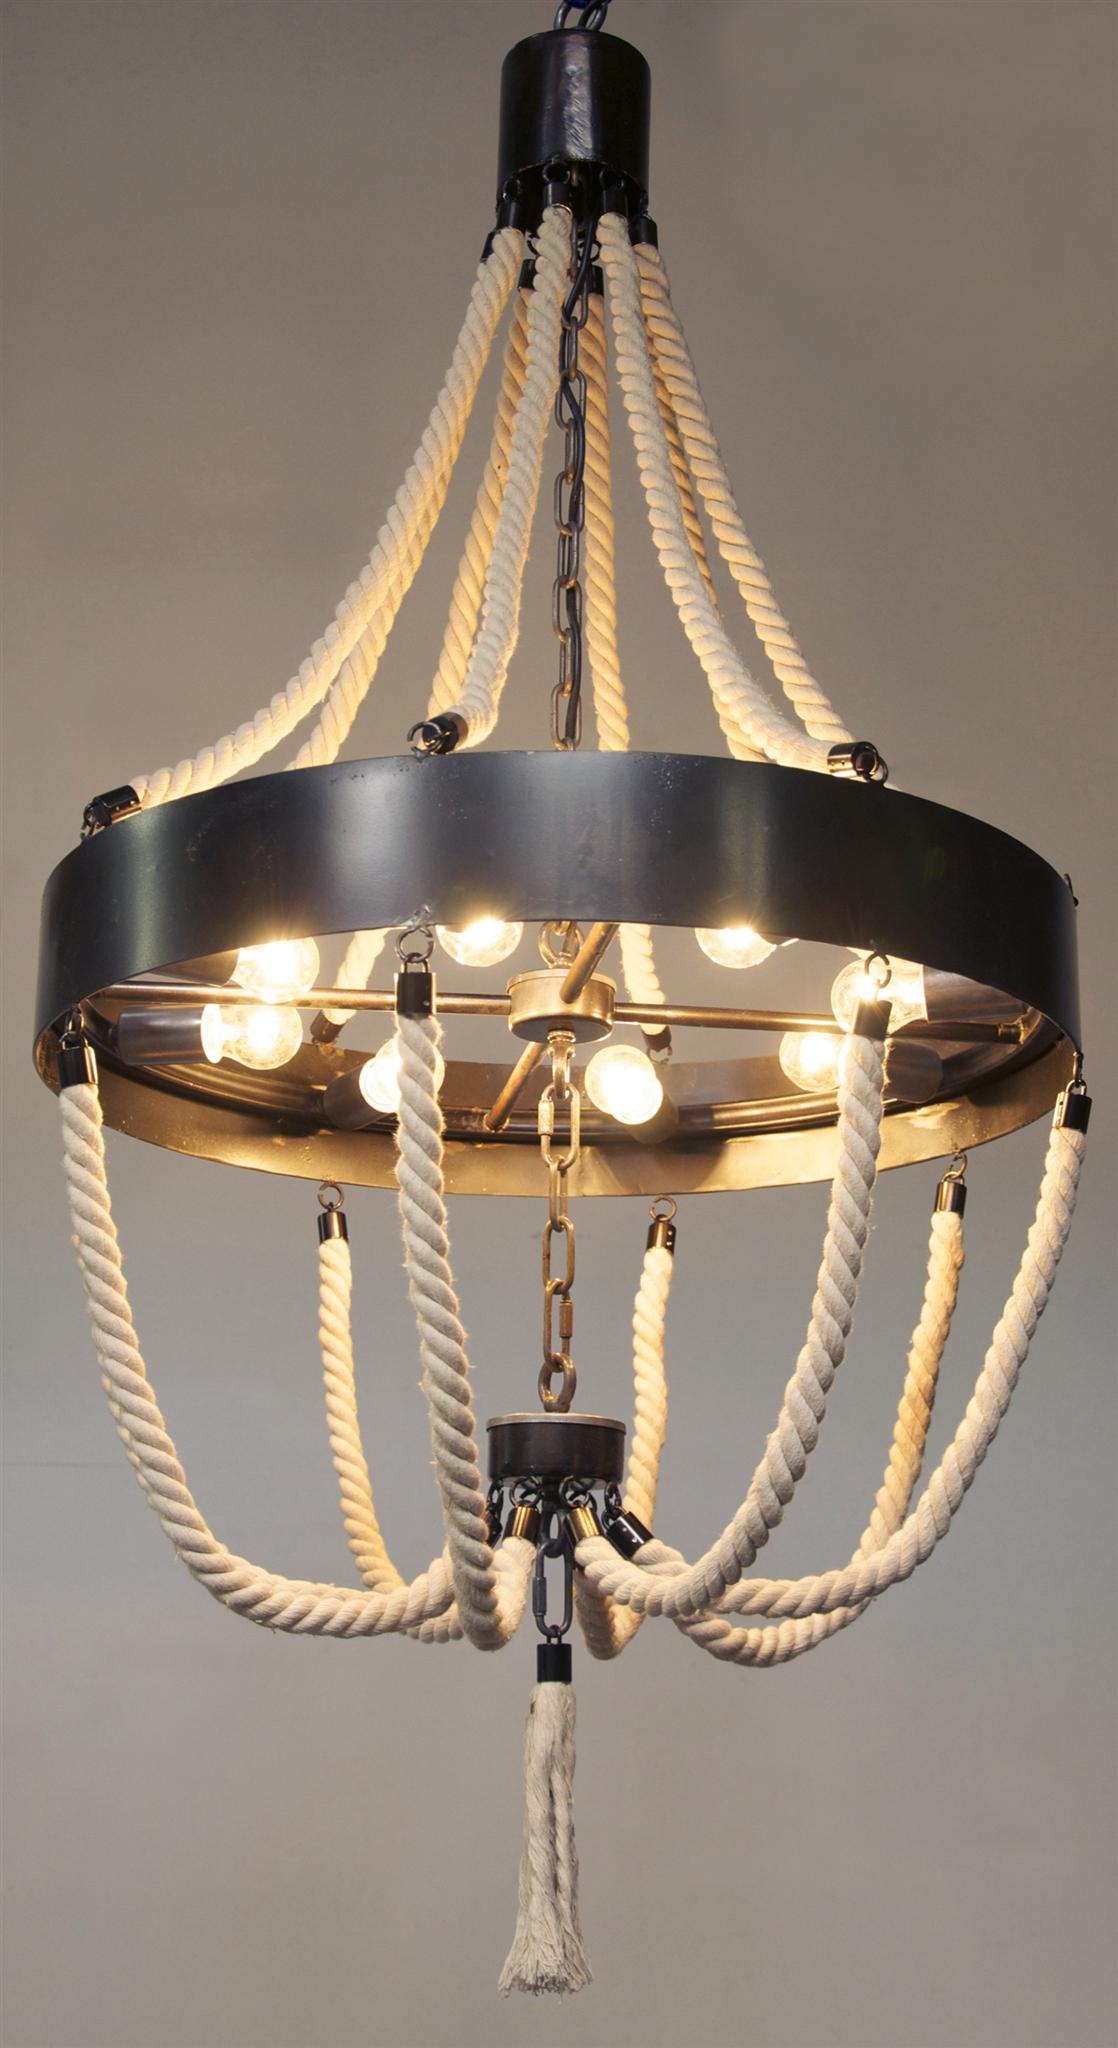 Alec Chandelier Metal and Rope chandeliers